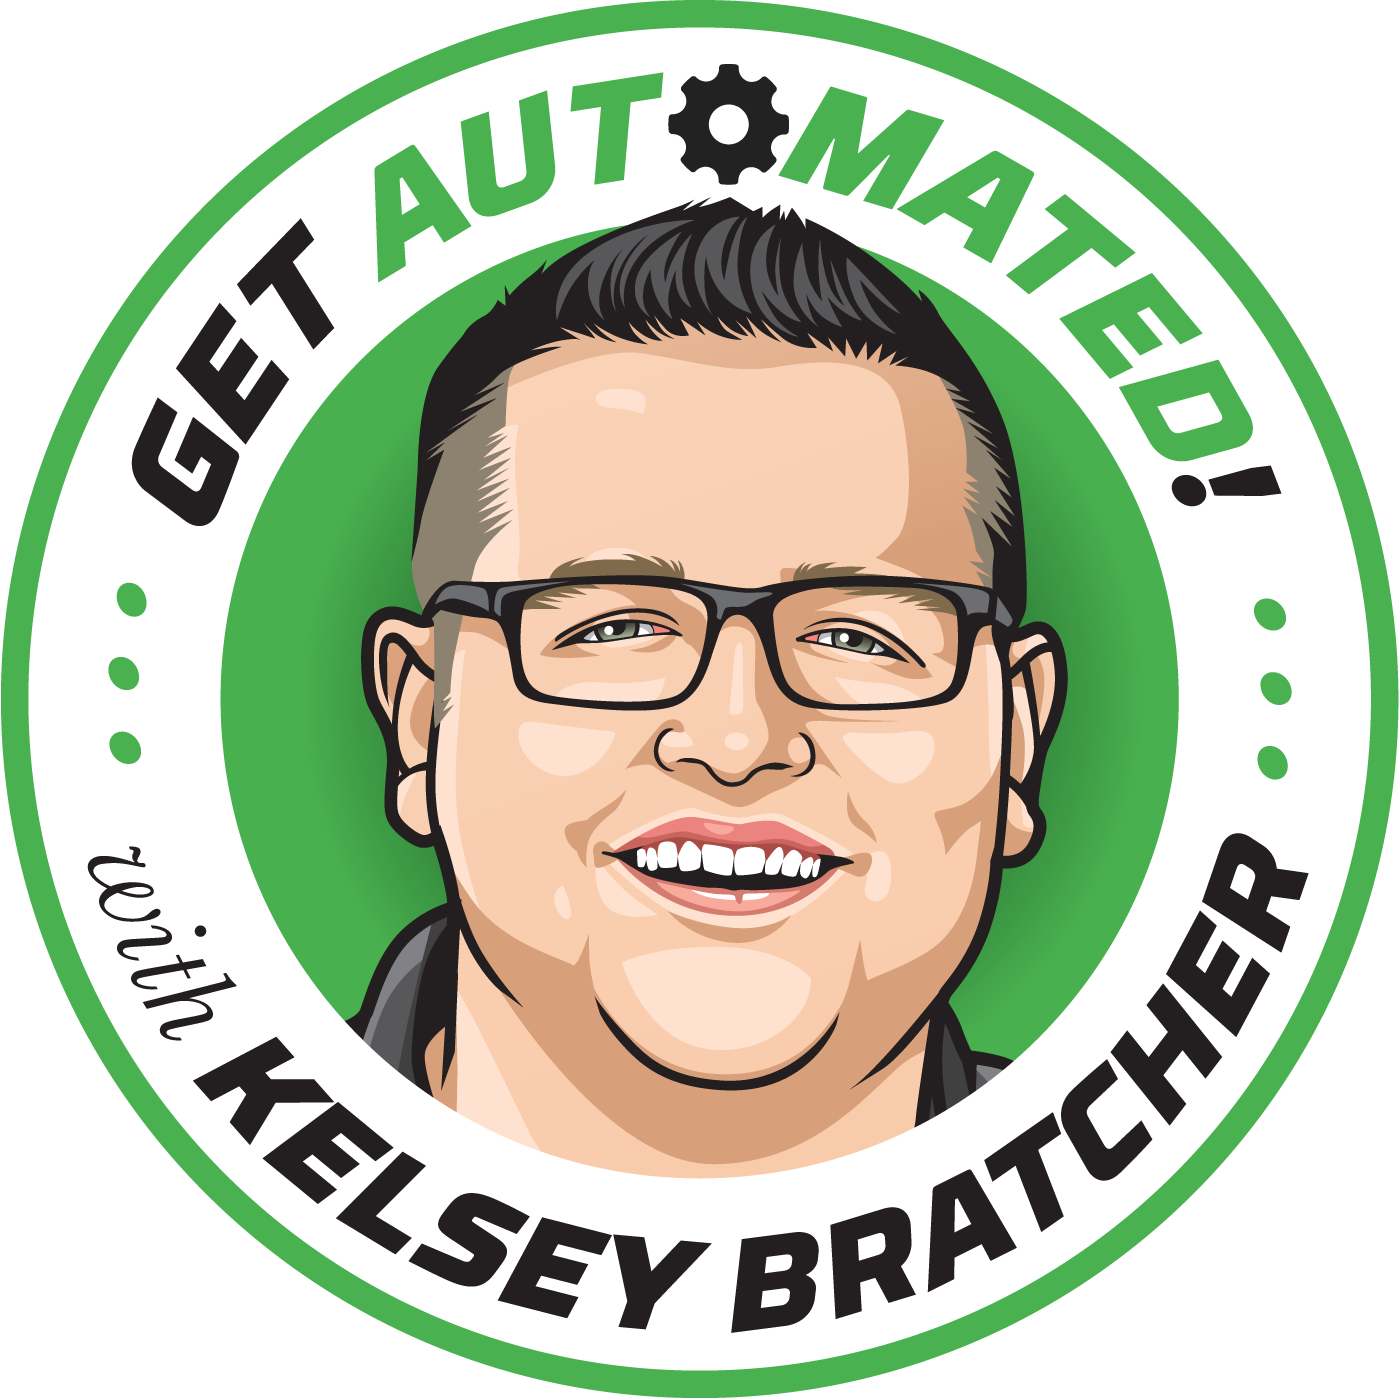 Get Automated Podcast With Kelsey Bratcher show art